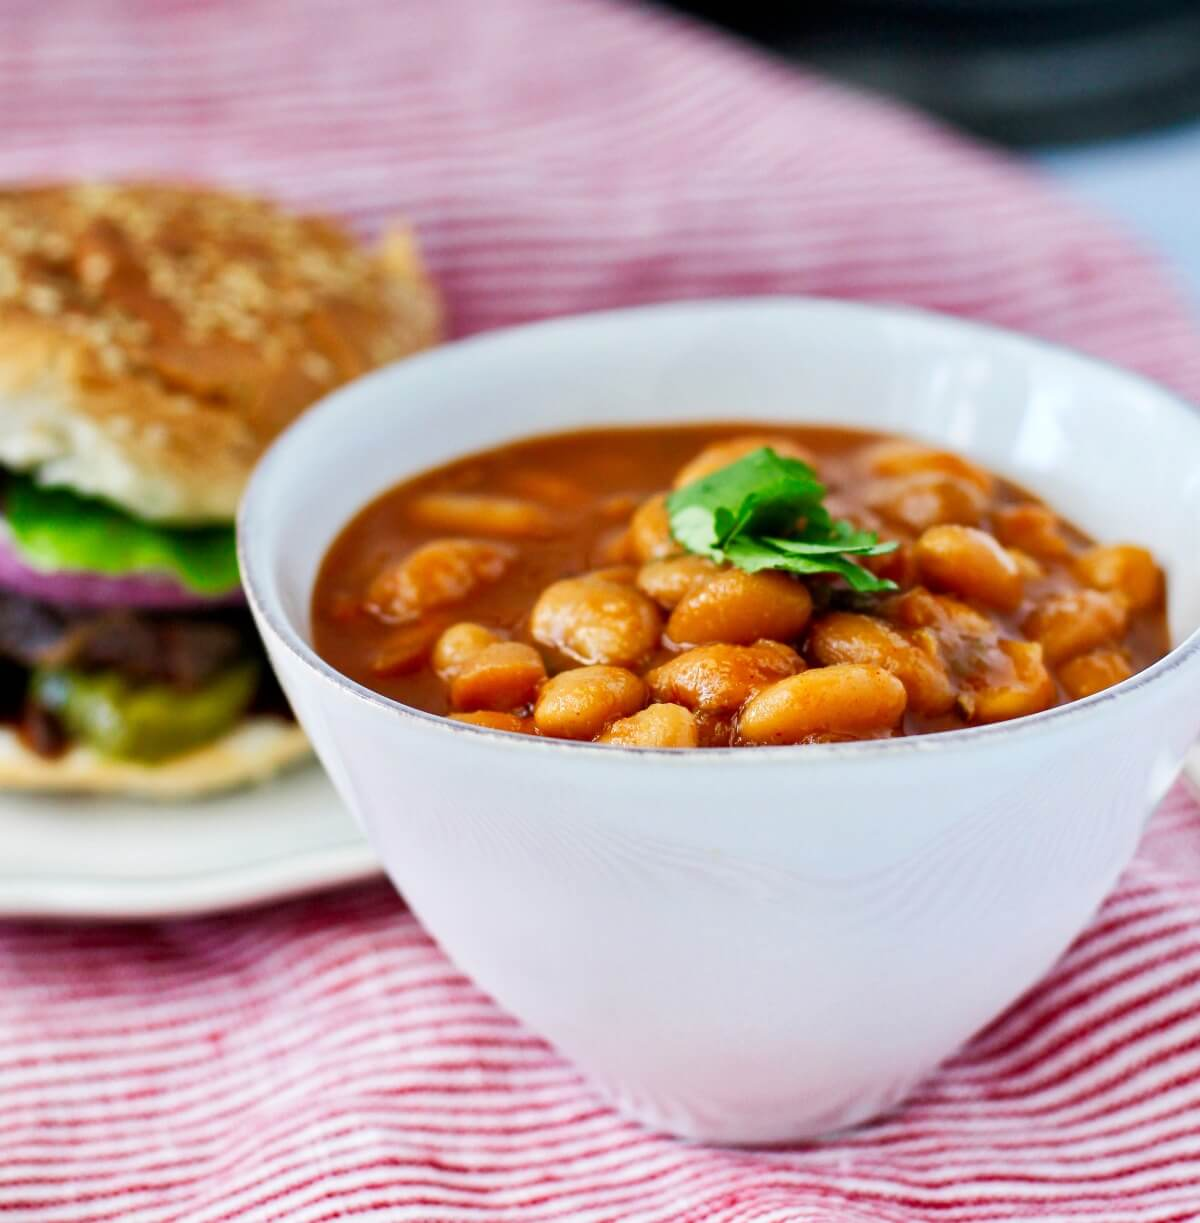 Barbecue Baked Beans in the Slow Cooker